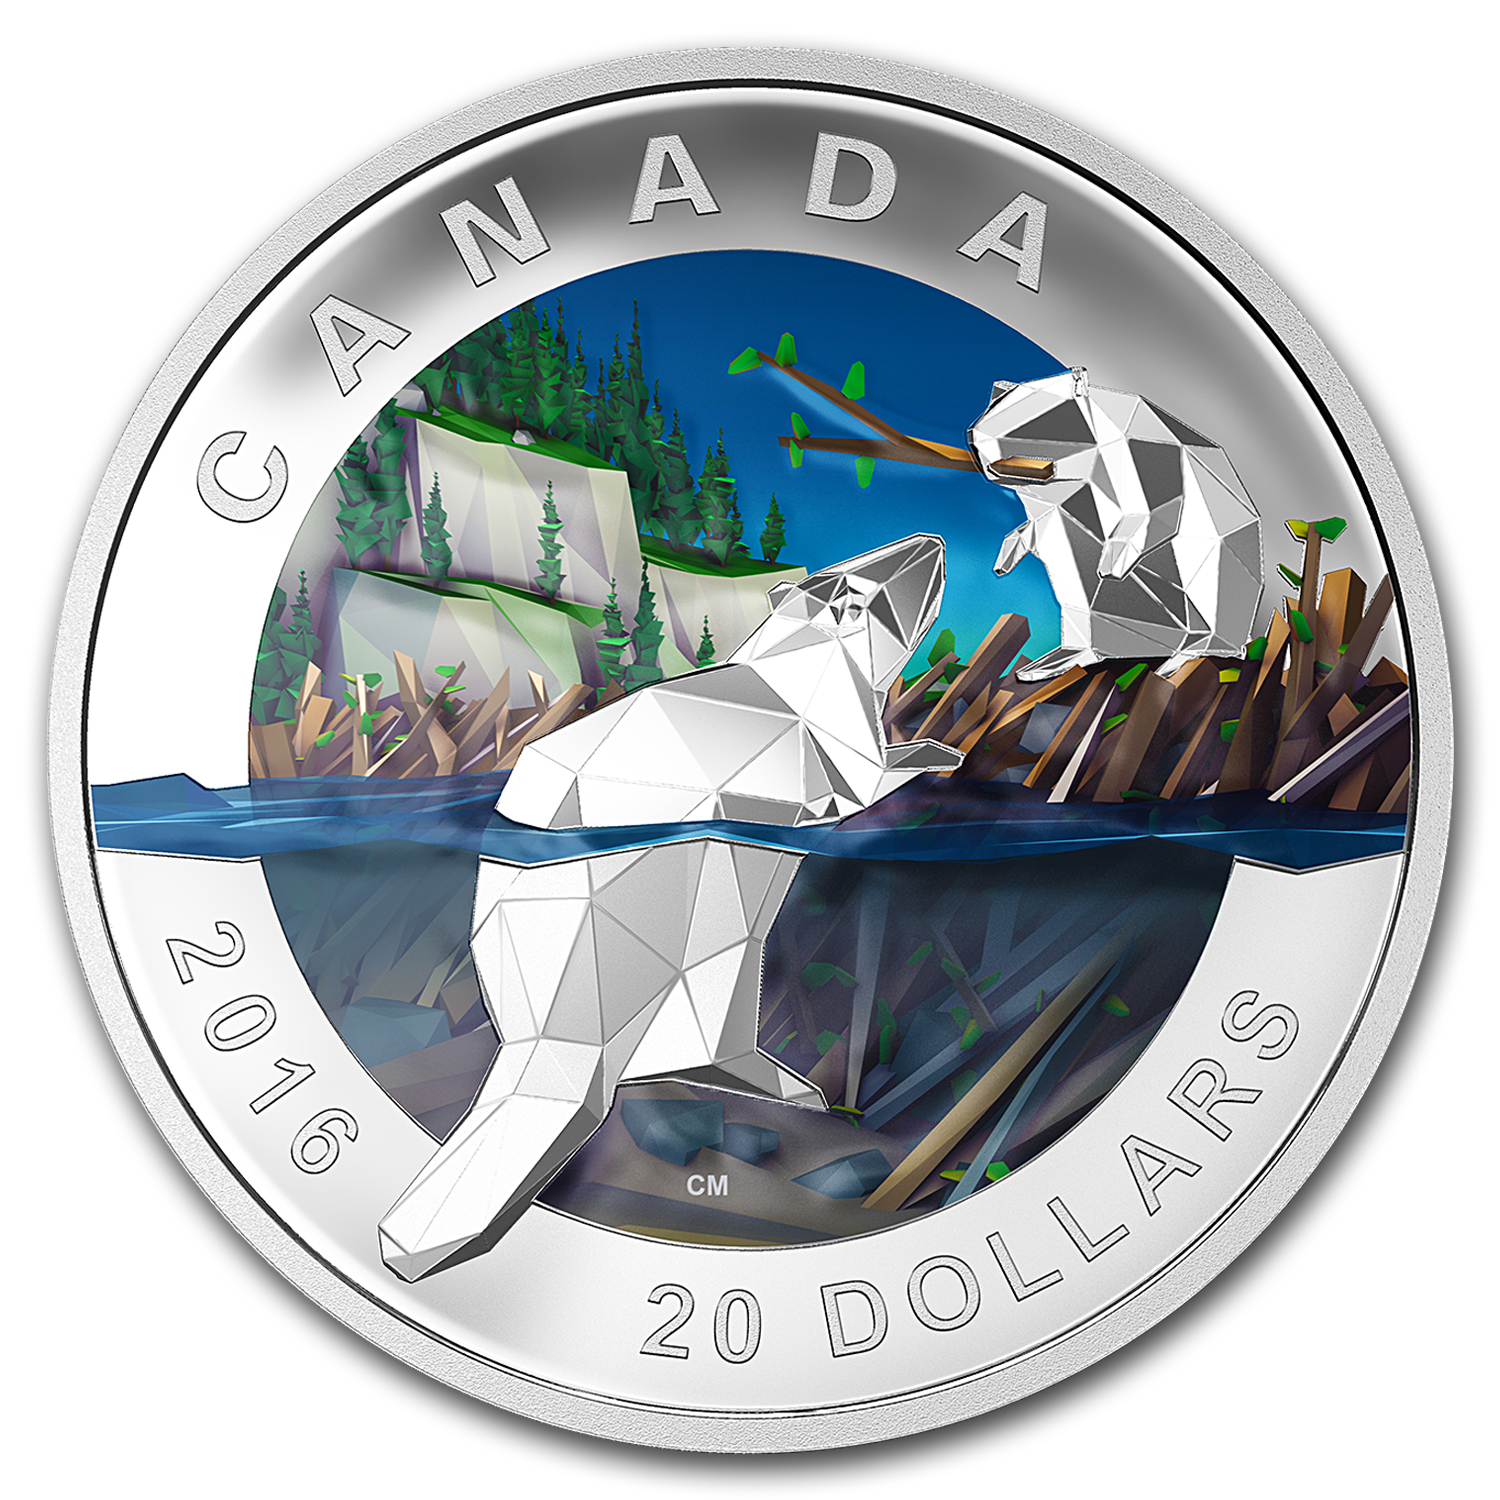 2016 Canada 1 oz Silver Geometry in Art: The Beaver